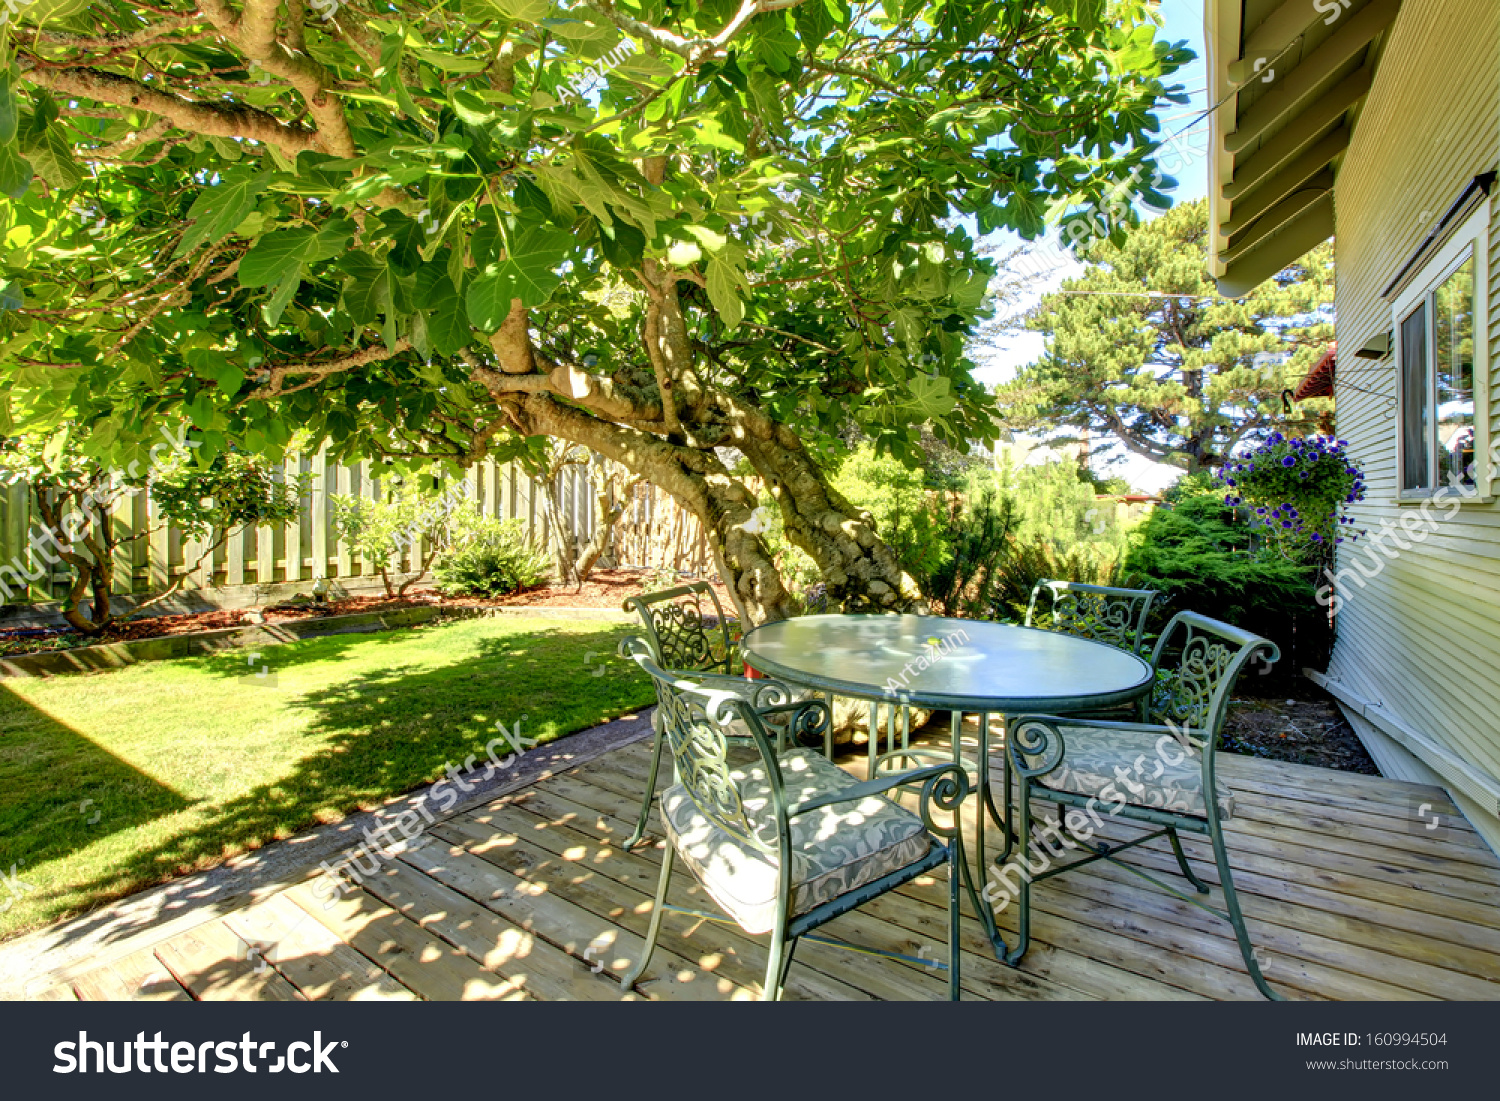 Typical American Backyard Of The Small Old Craftsman Style ...